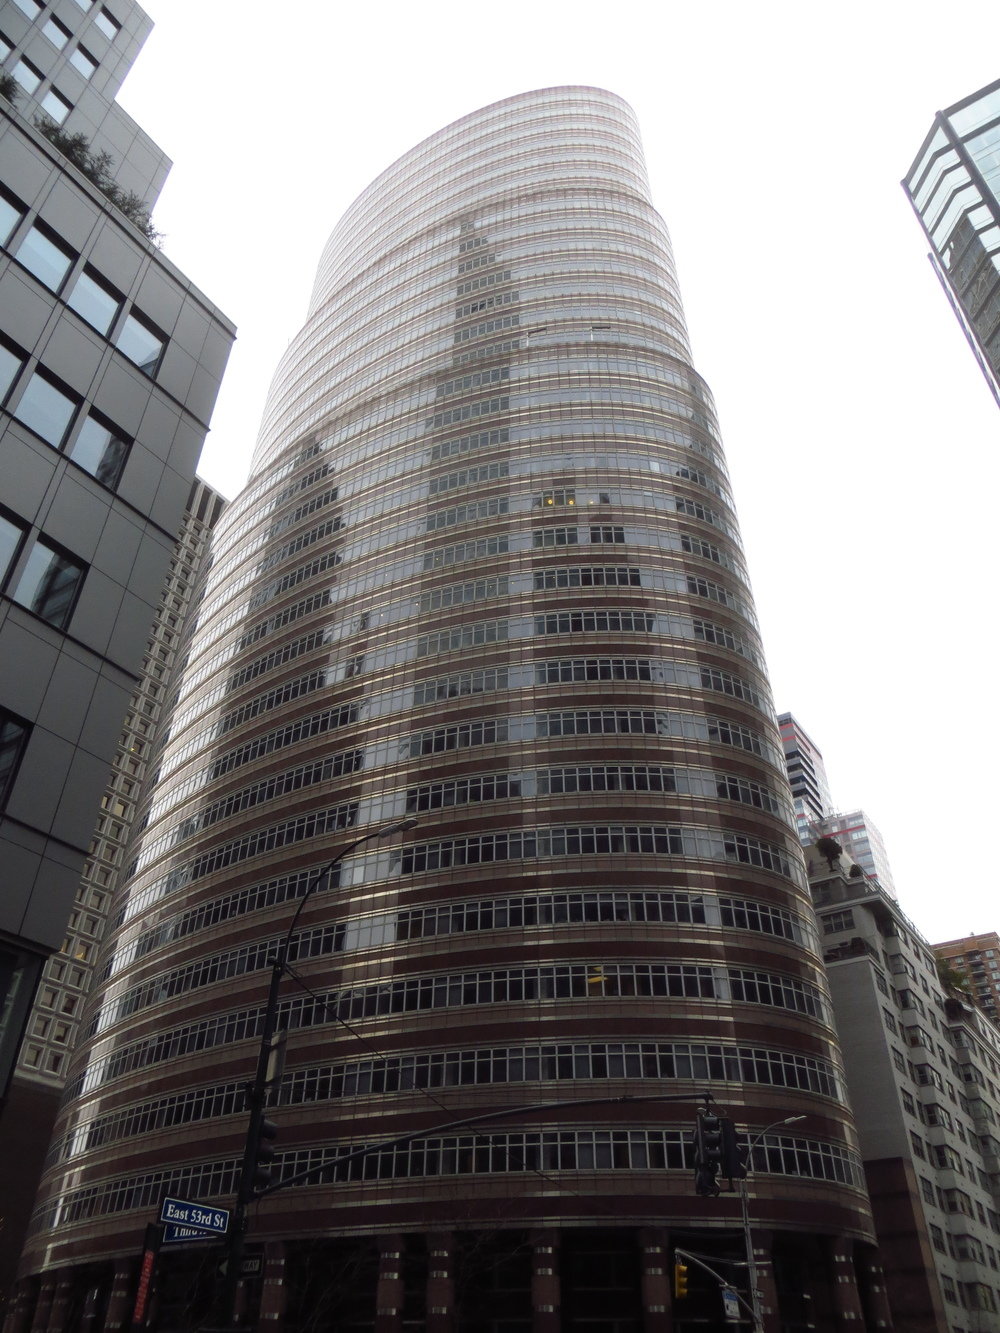 Lipstick building again (this is where Bernie Madoff worked)